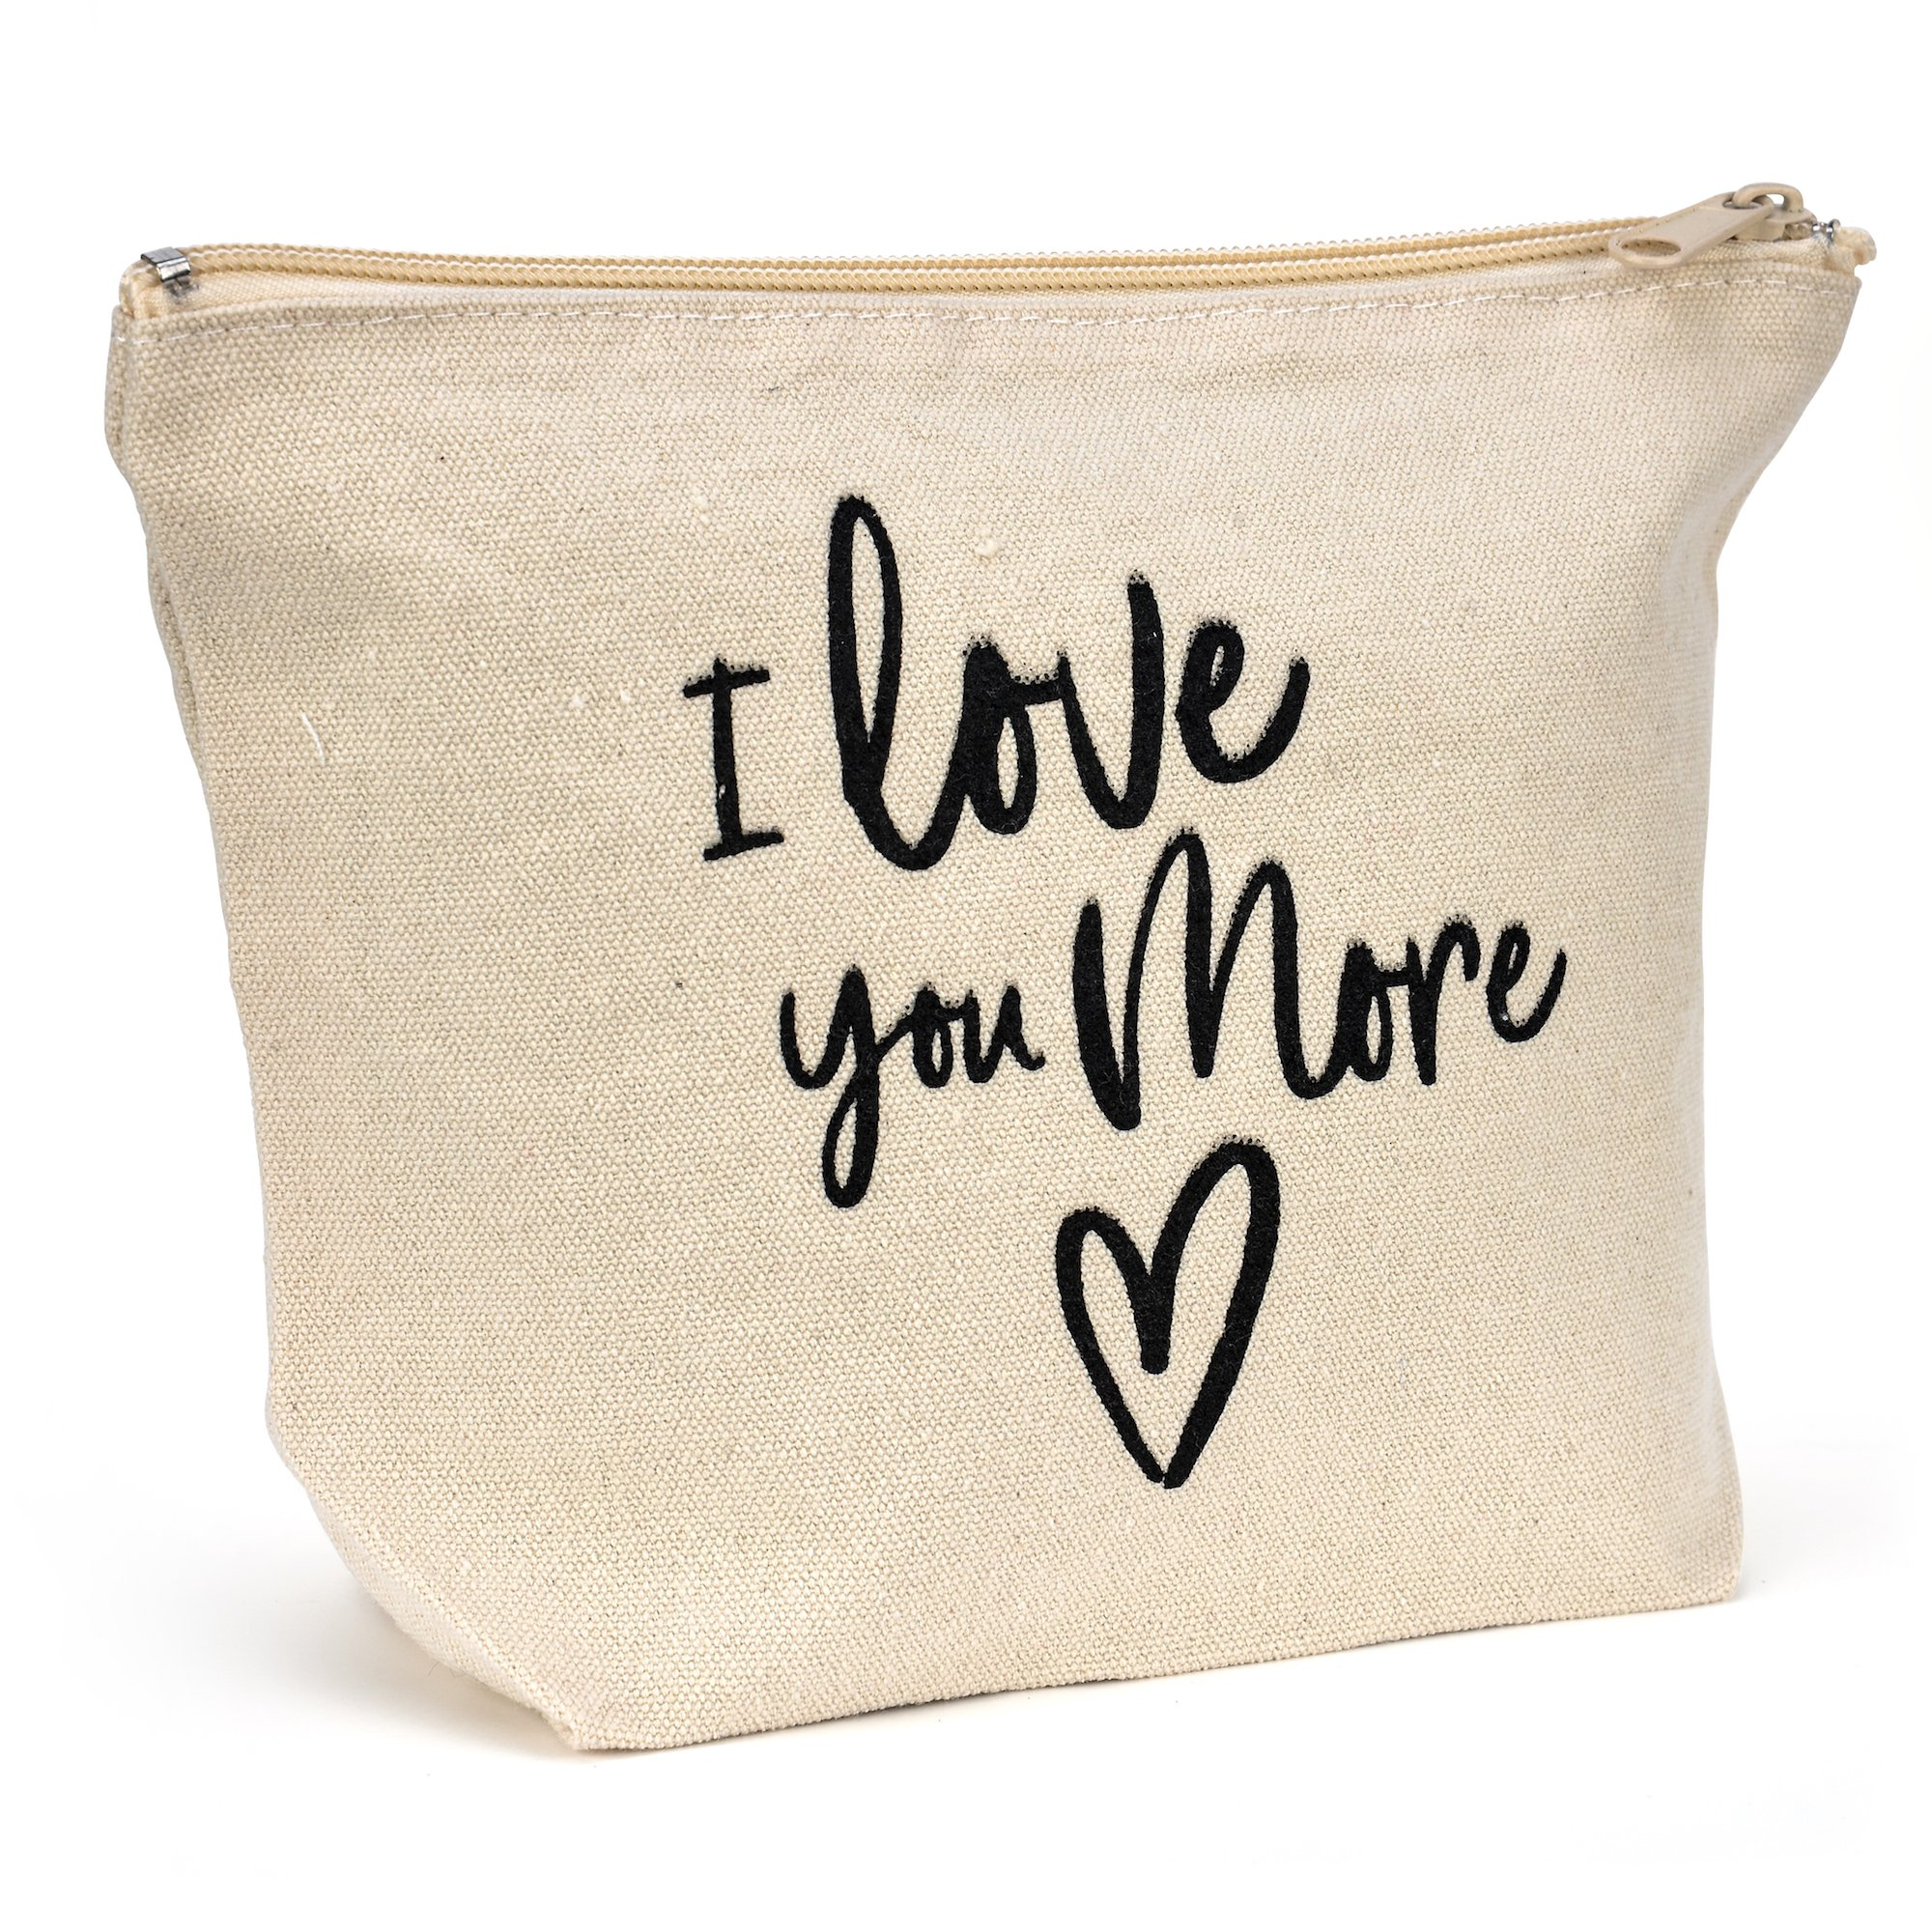 Natural Canvas Makeup Bag - I Love You More - Friendship Gift - Fun Canvas Travel Bag, Small Canvas Bag For Travel Carryon - 9'' x 7'' x 3'' by myTaT (Image #1)